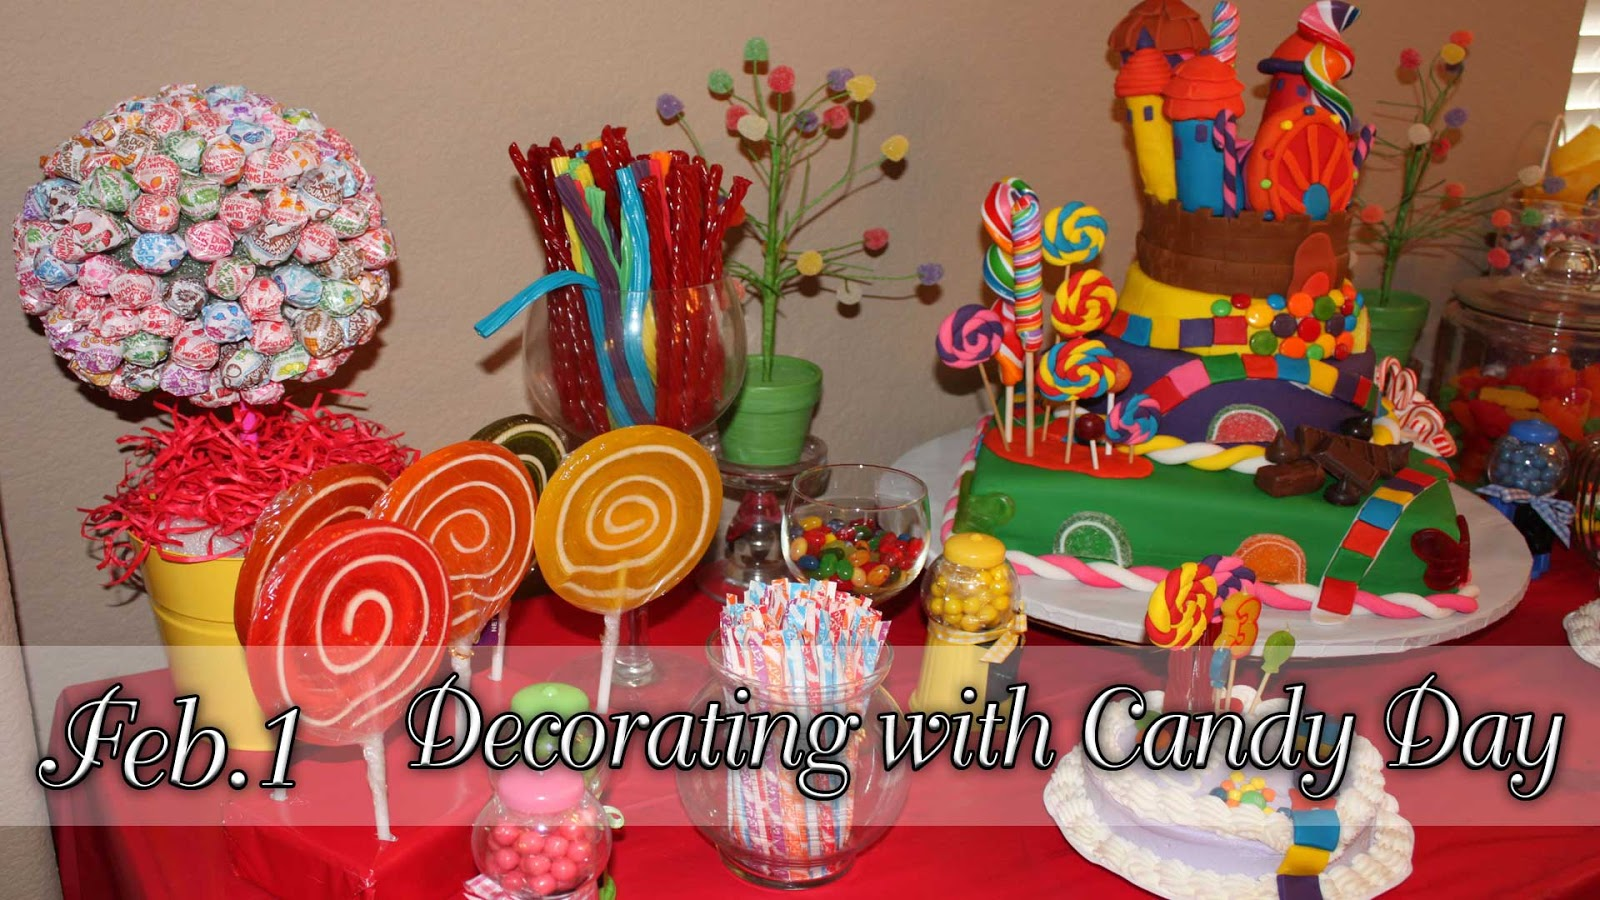 Every Day Is Special February 1 Decorating With Candy Day